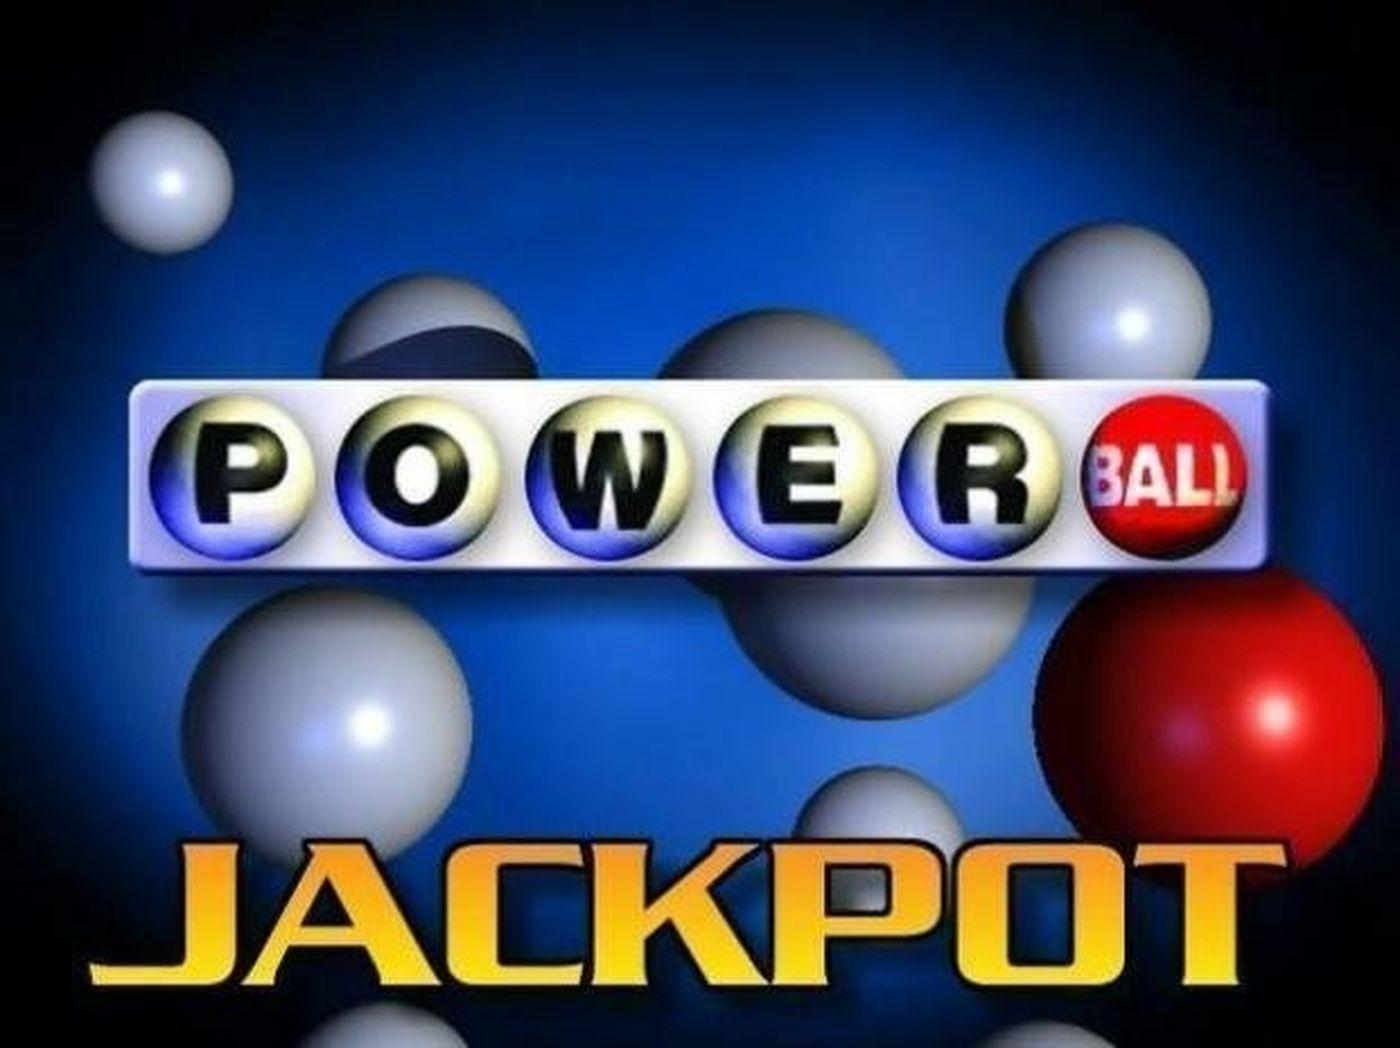 Powerball drawn for $768 million, third largest jackpot in history